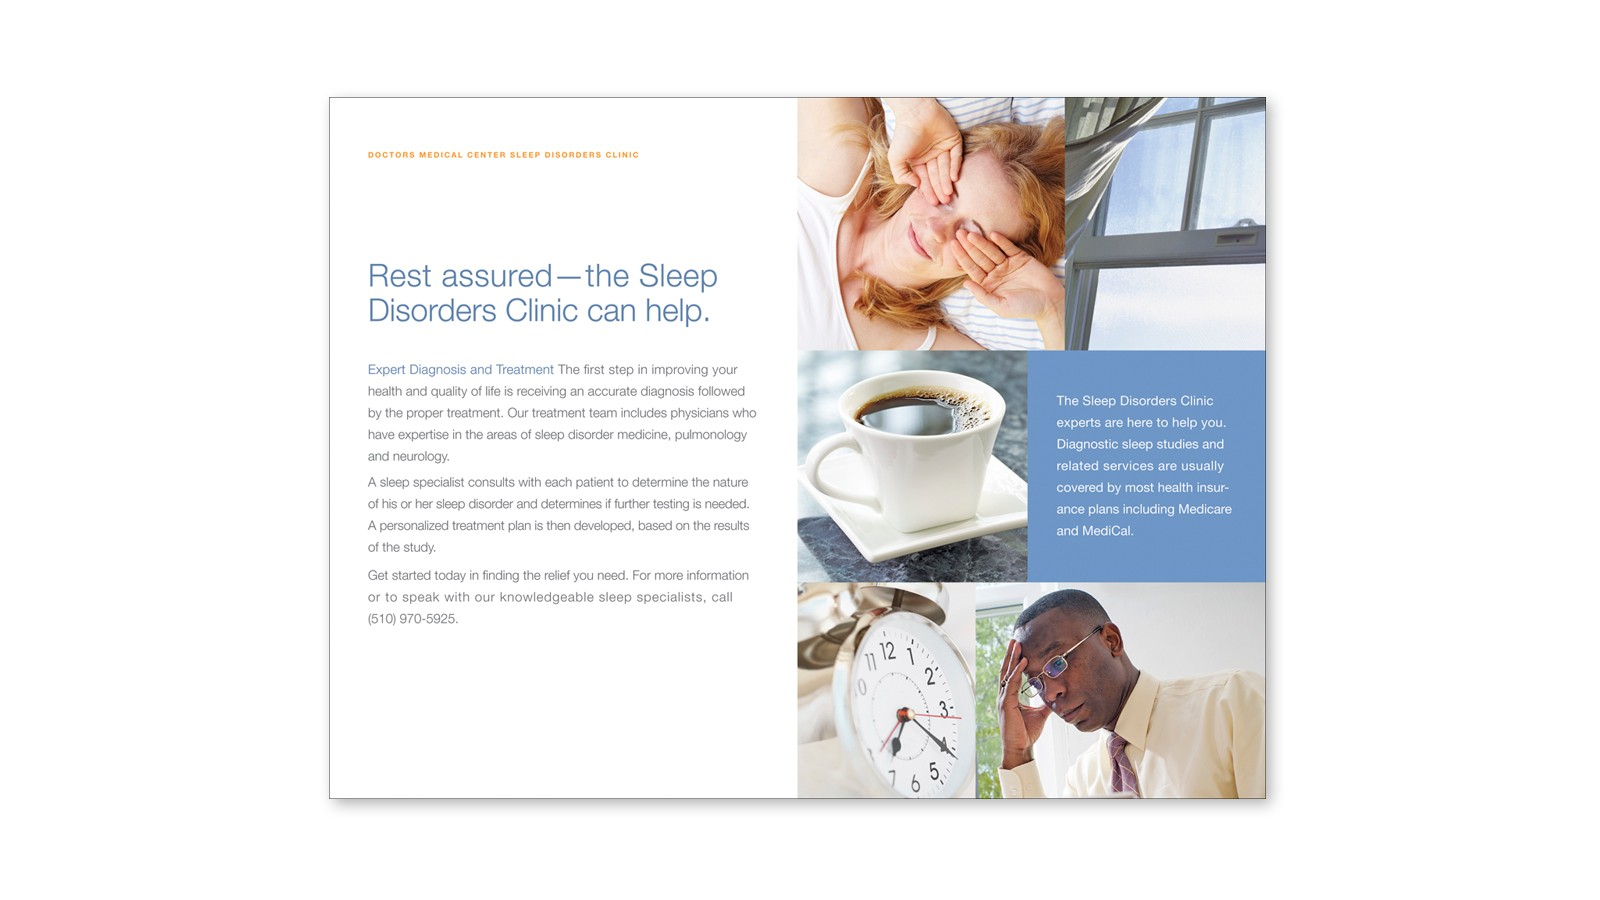 DOCTORS MEDICAL CENTER BRANDING